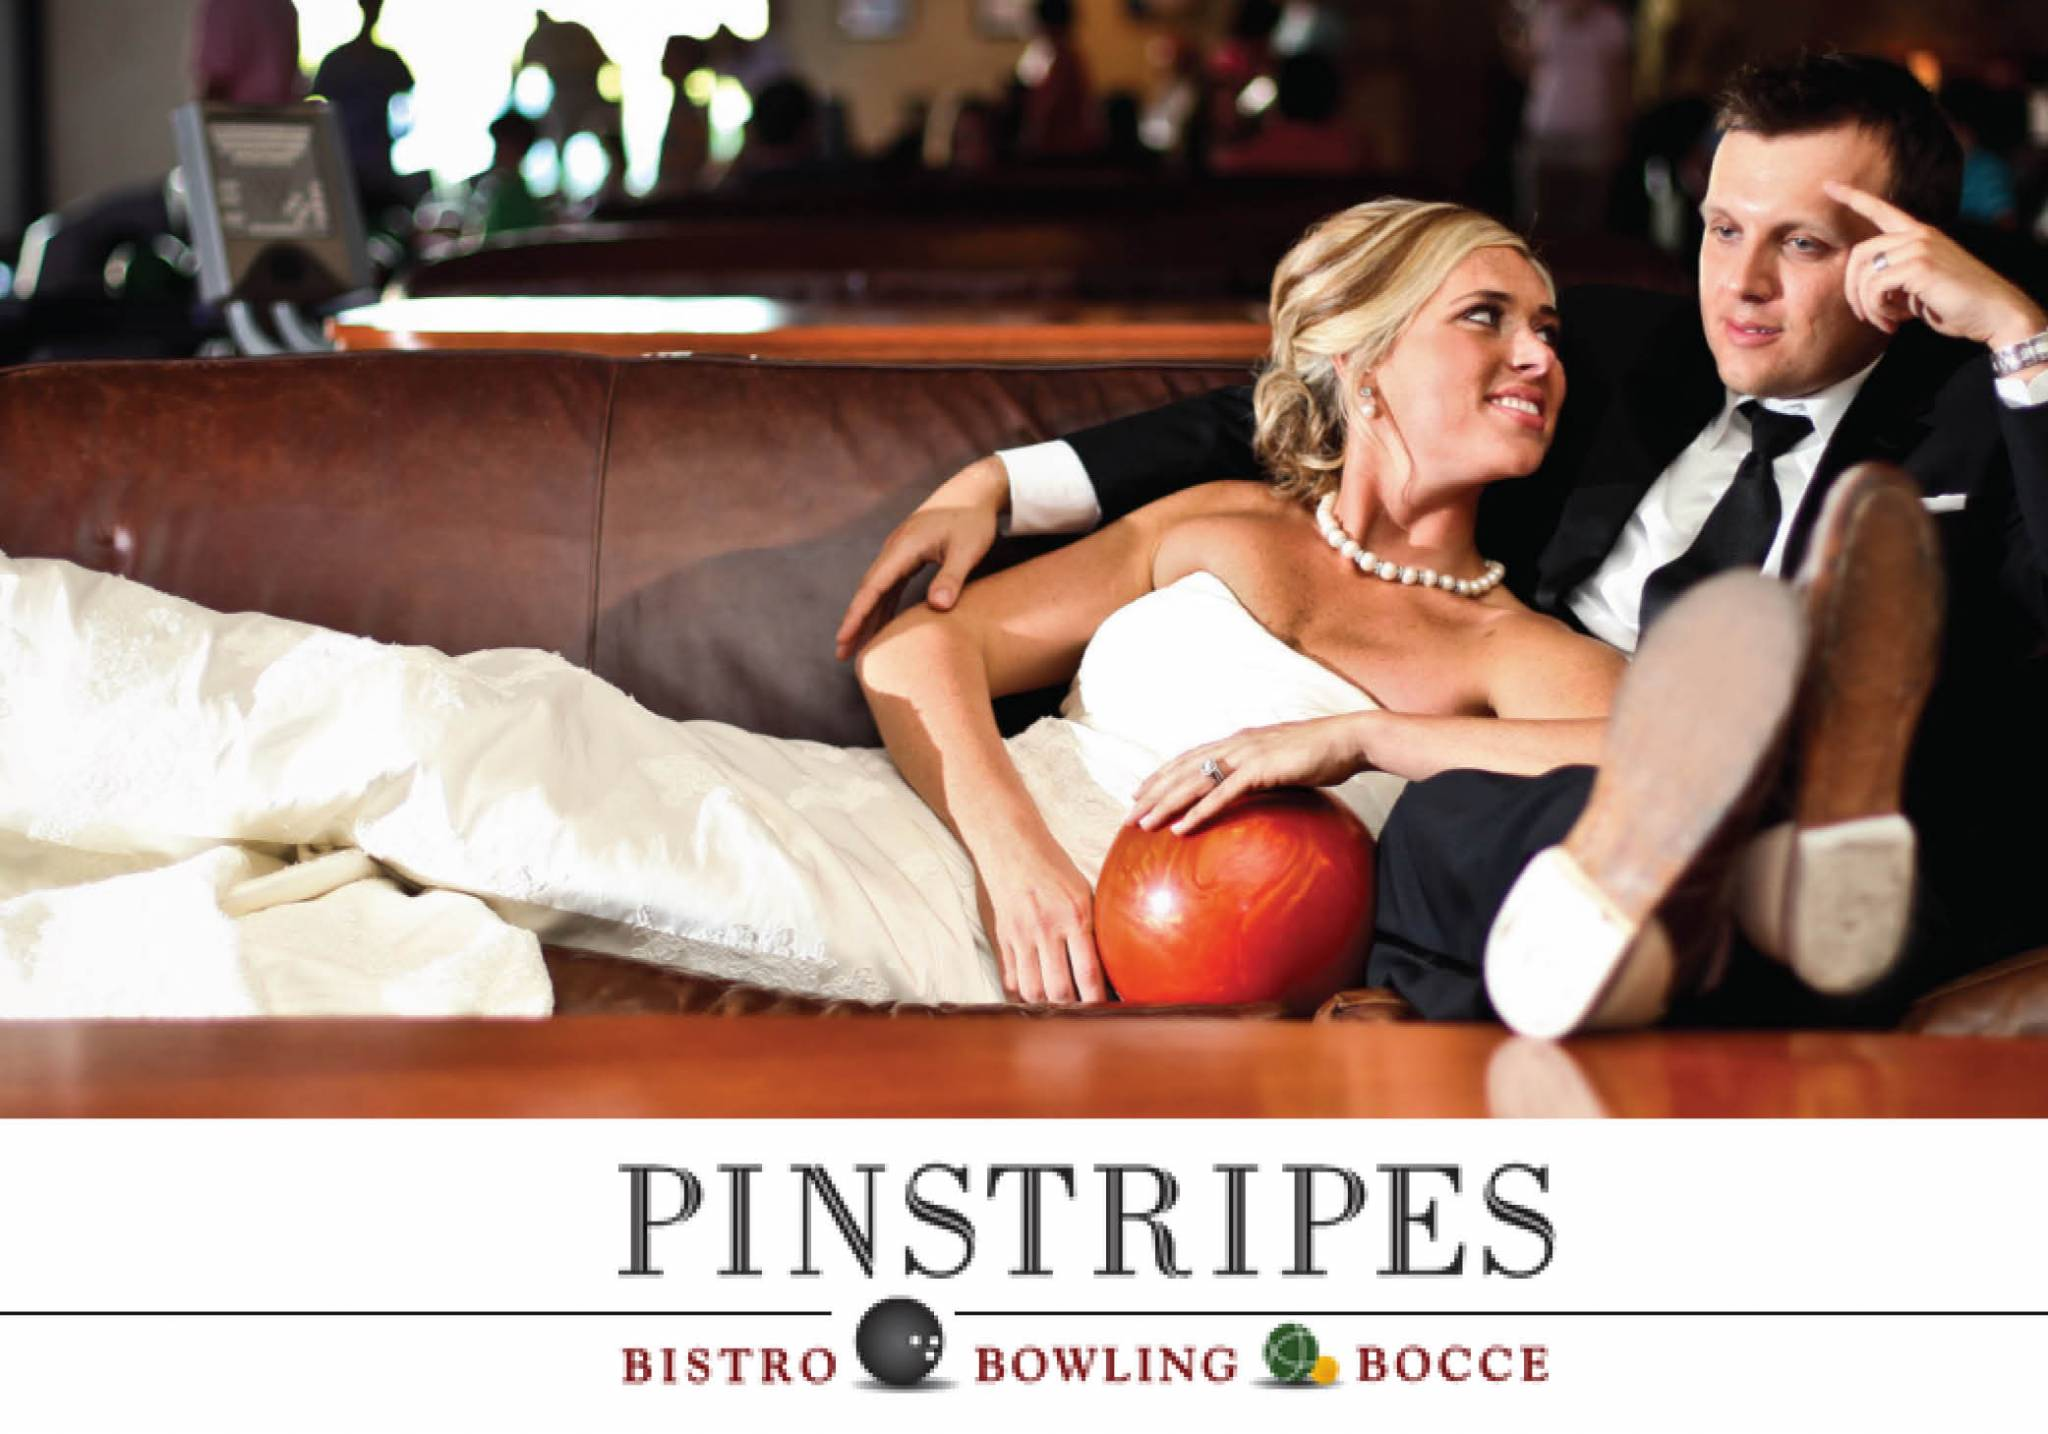 Pinstripes Bocce Bowling - Chicago, Illinois - South Barrington, Illinois - Oak Brook, Illinois - Northbrook, Illinois